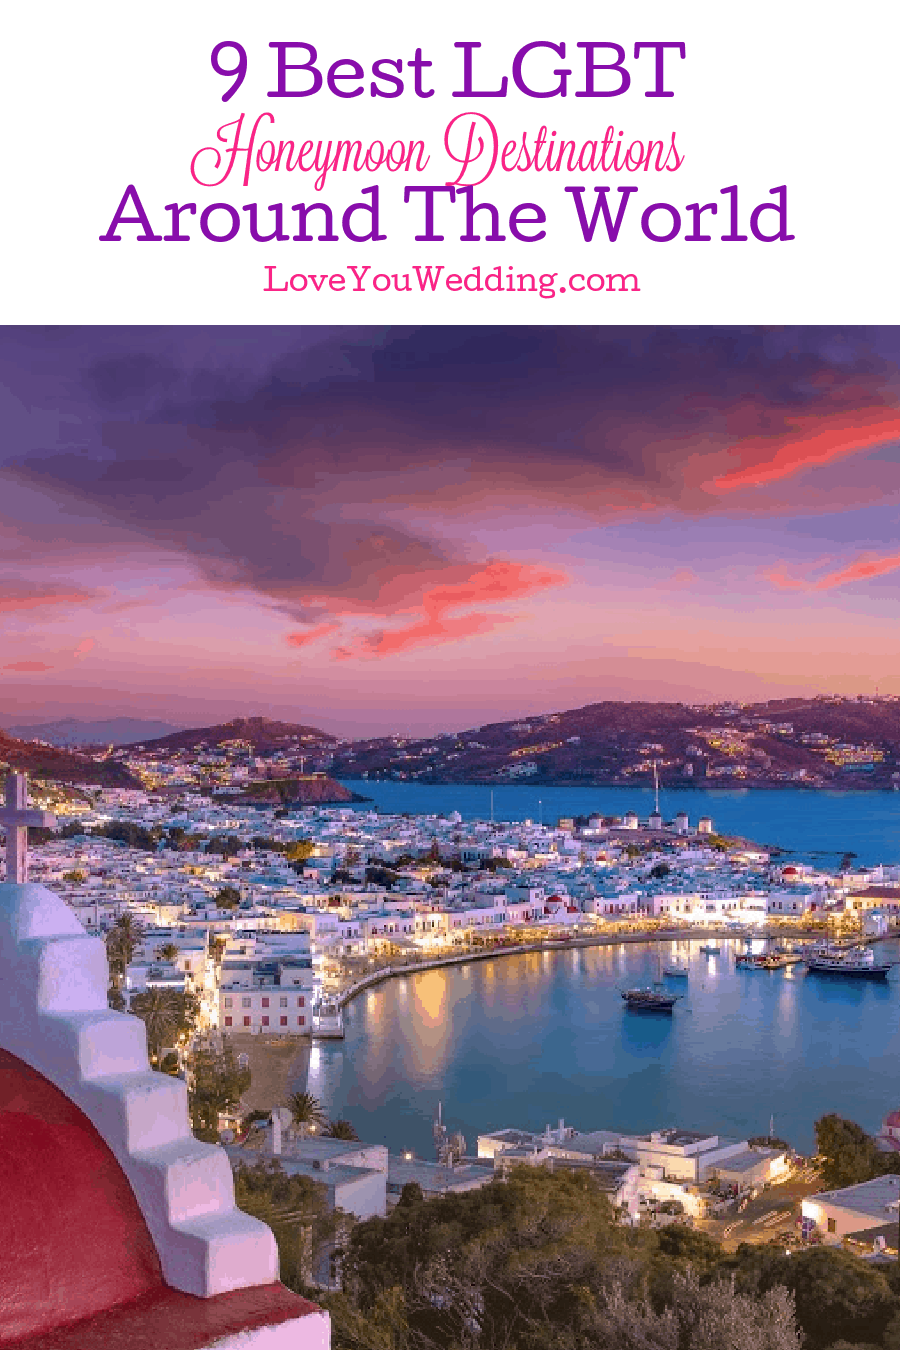 Looking for the hands-down best of the best LGBT honeymoon destinations around the world? Get ready to pack your bags and head to our top 5 picks!